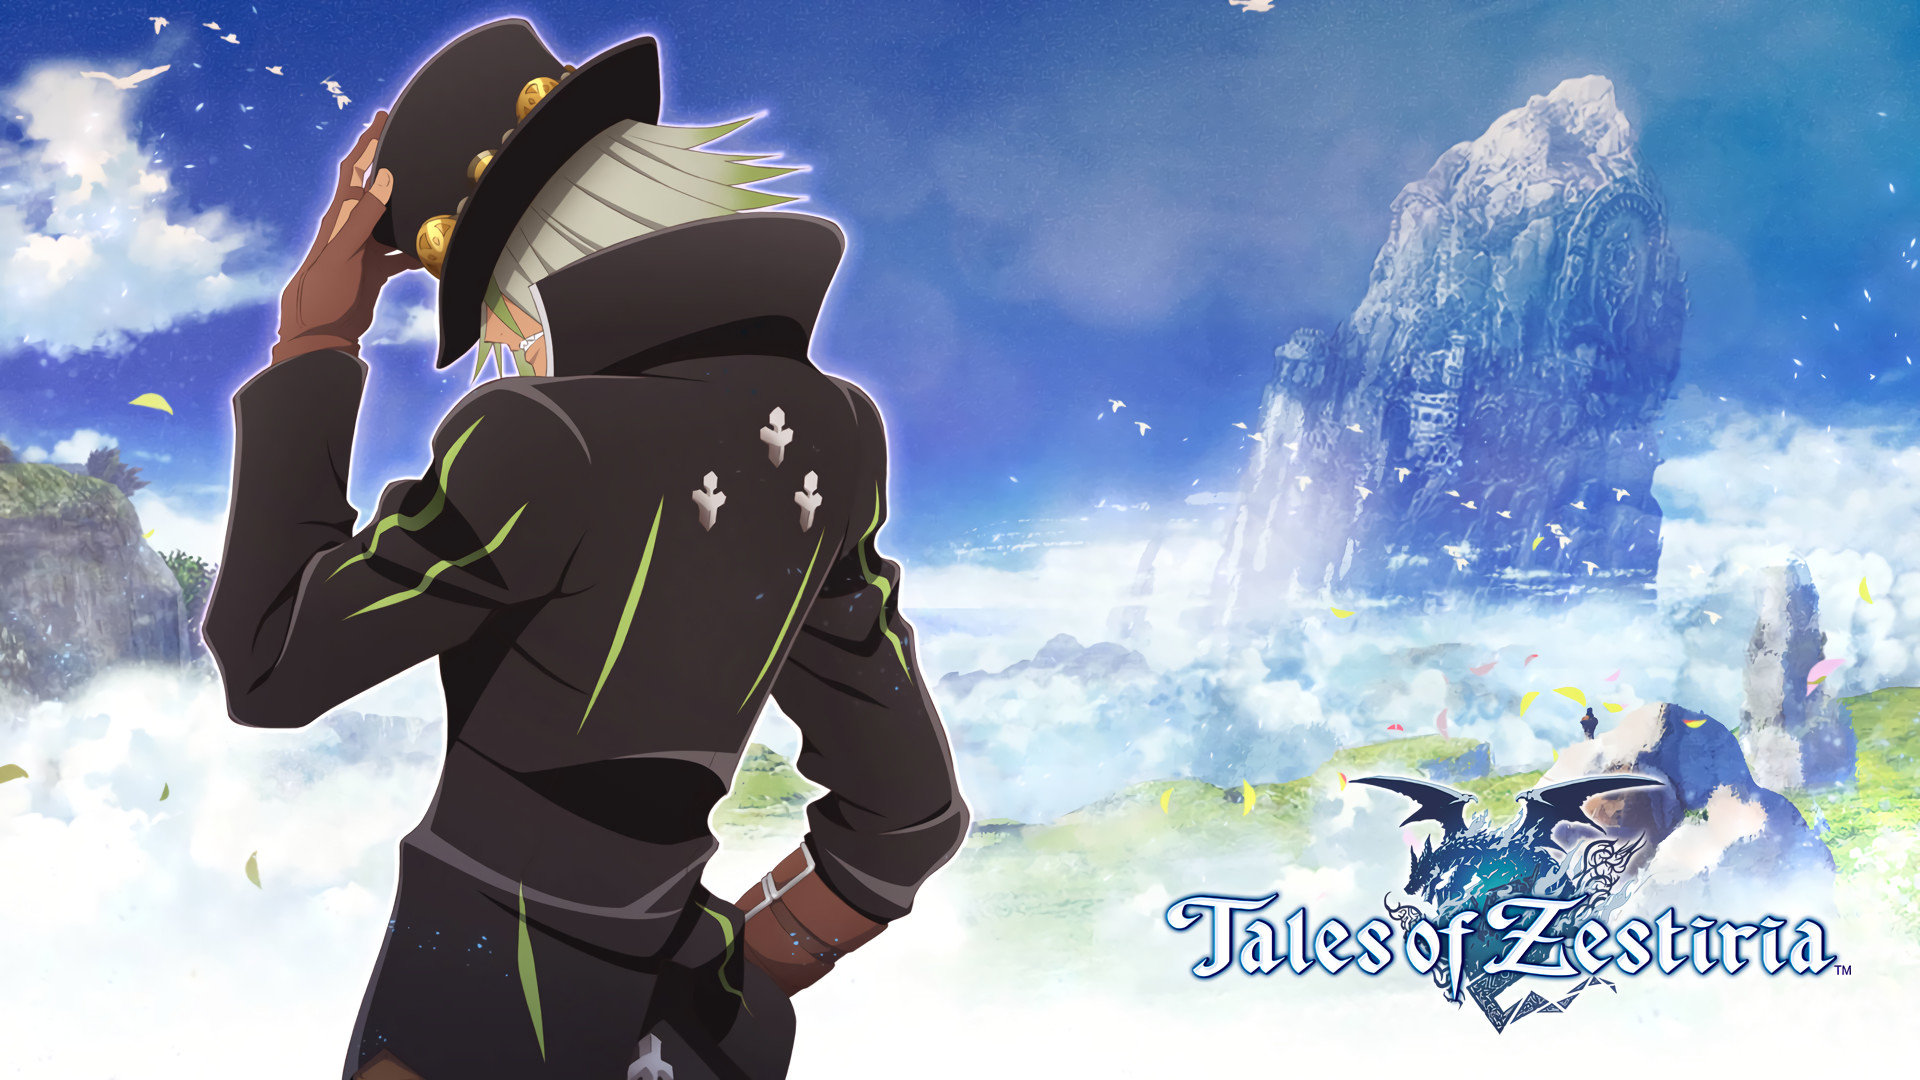 Awesome Tales Of Zestiria free background ID:109576 for hd 1920x1080 computer